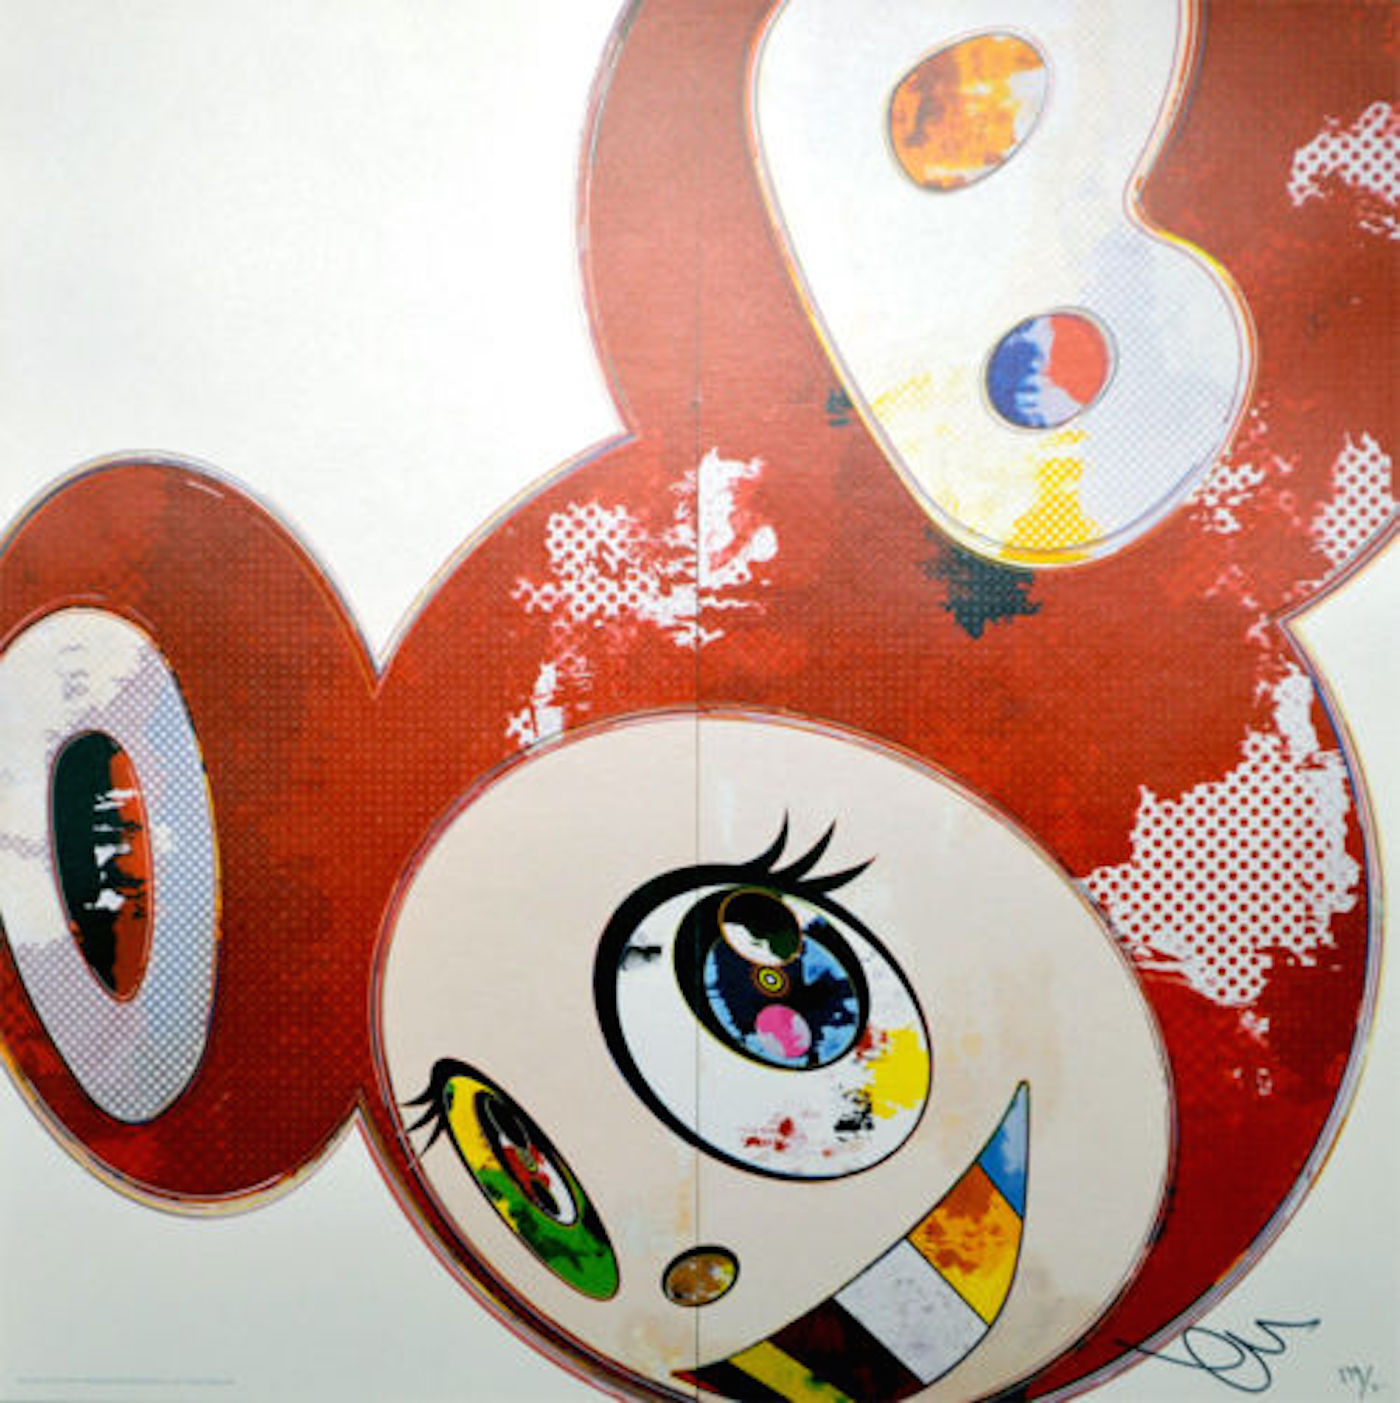 And then 3000 Red by Takashi Murakami